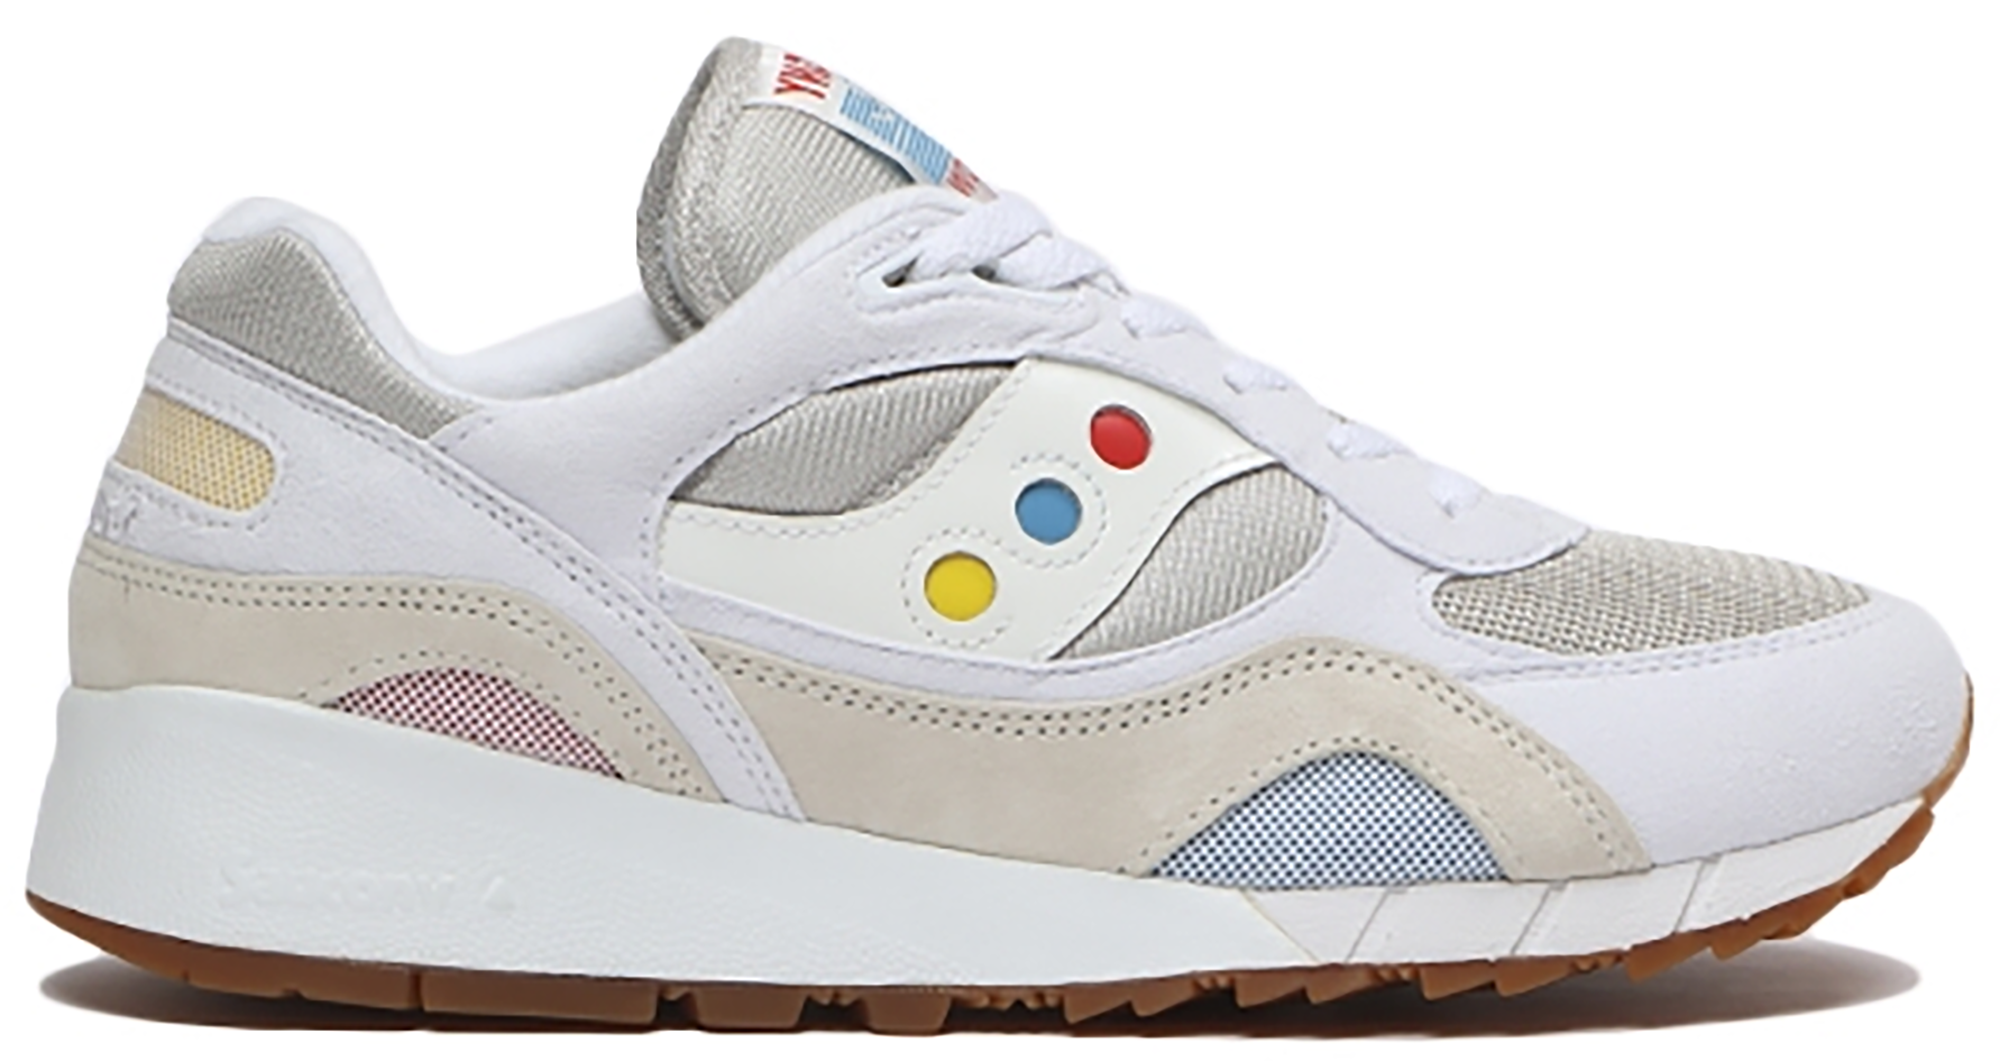 Saucony Shadow 6000 White Multi-Color